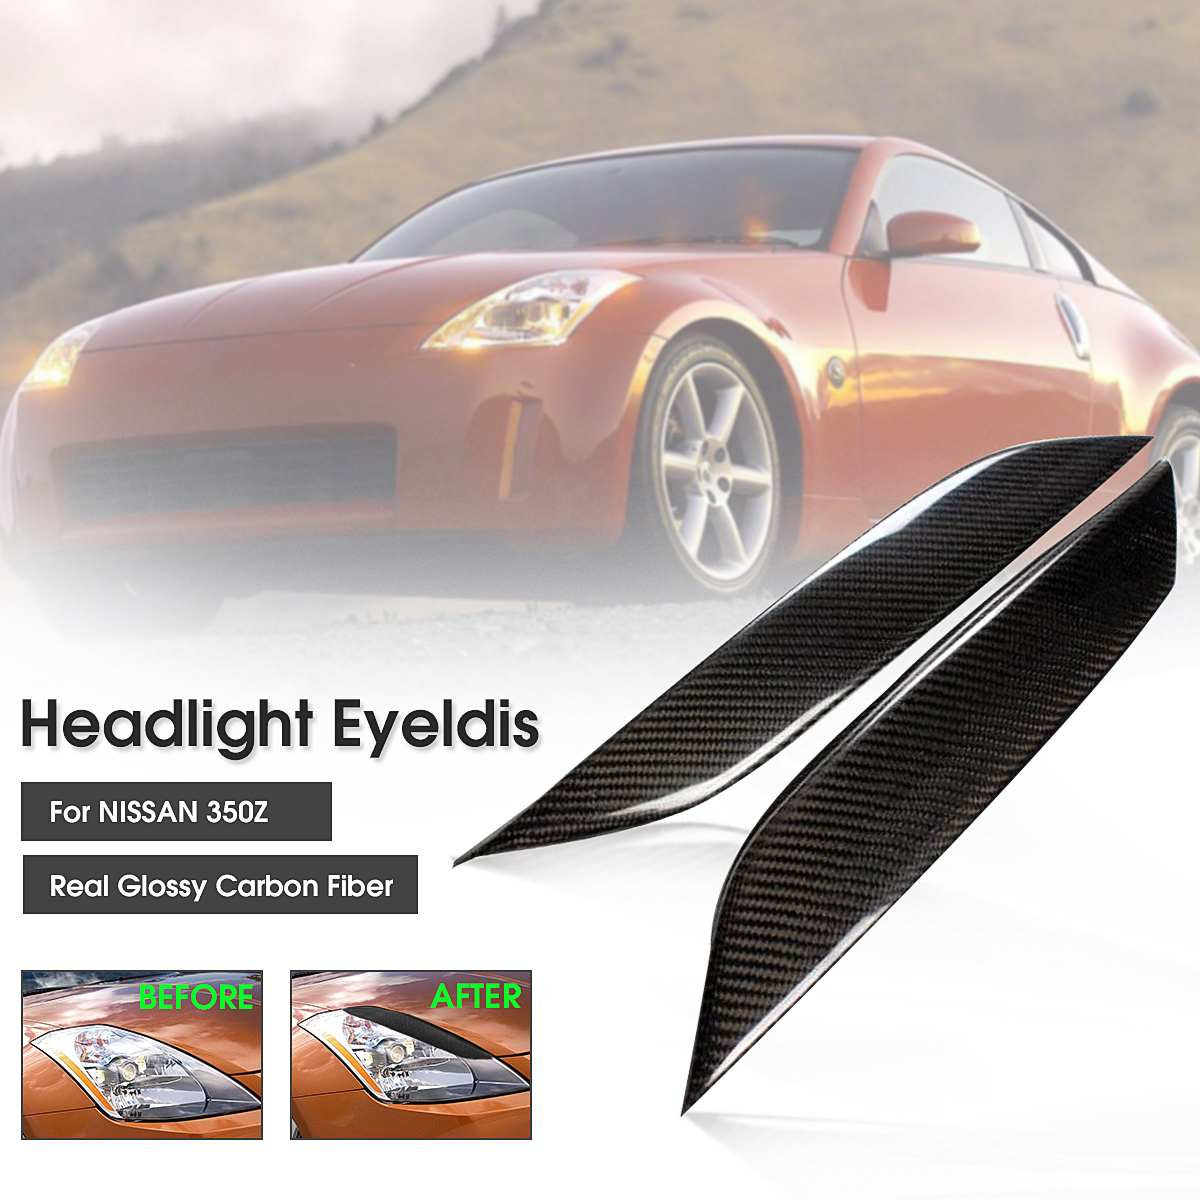 Real Carbon Fiber A Pair Car Front Headlight Eyelids Eyebrow Eye Lid Cover Tirm For Nissan 2003-2008 350Z Z33 All Models image